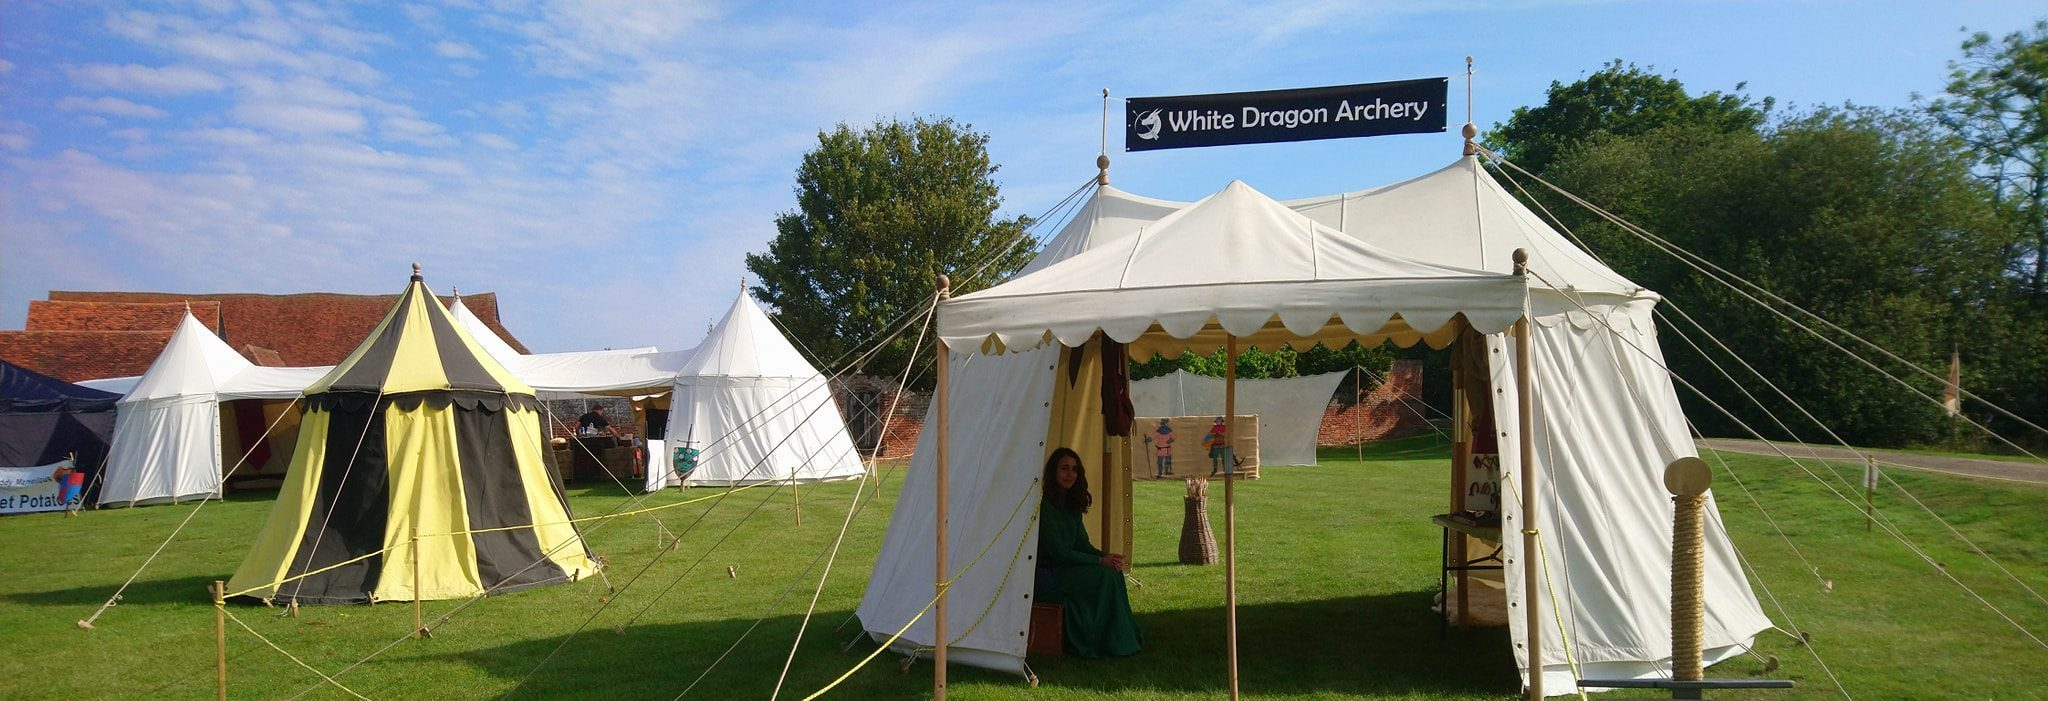 Mobile archery range at a medieval re-enactment fayre